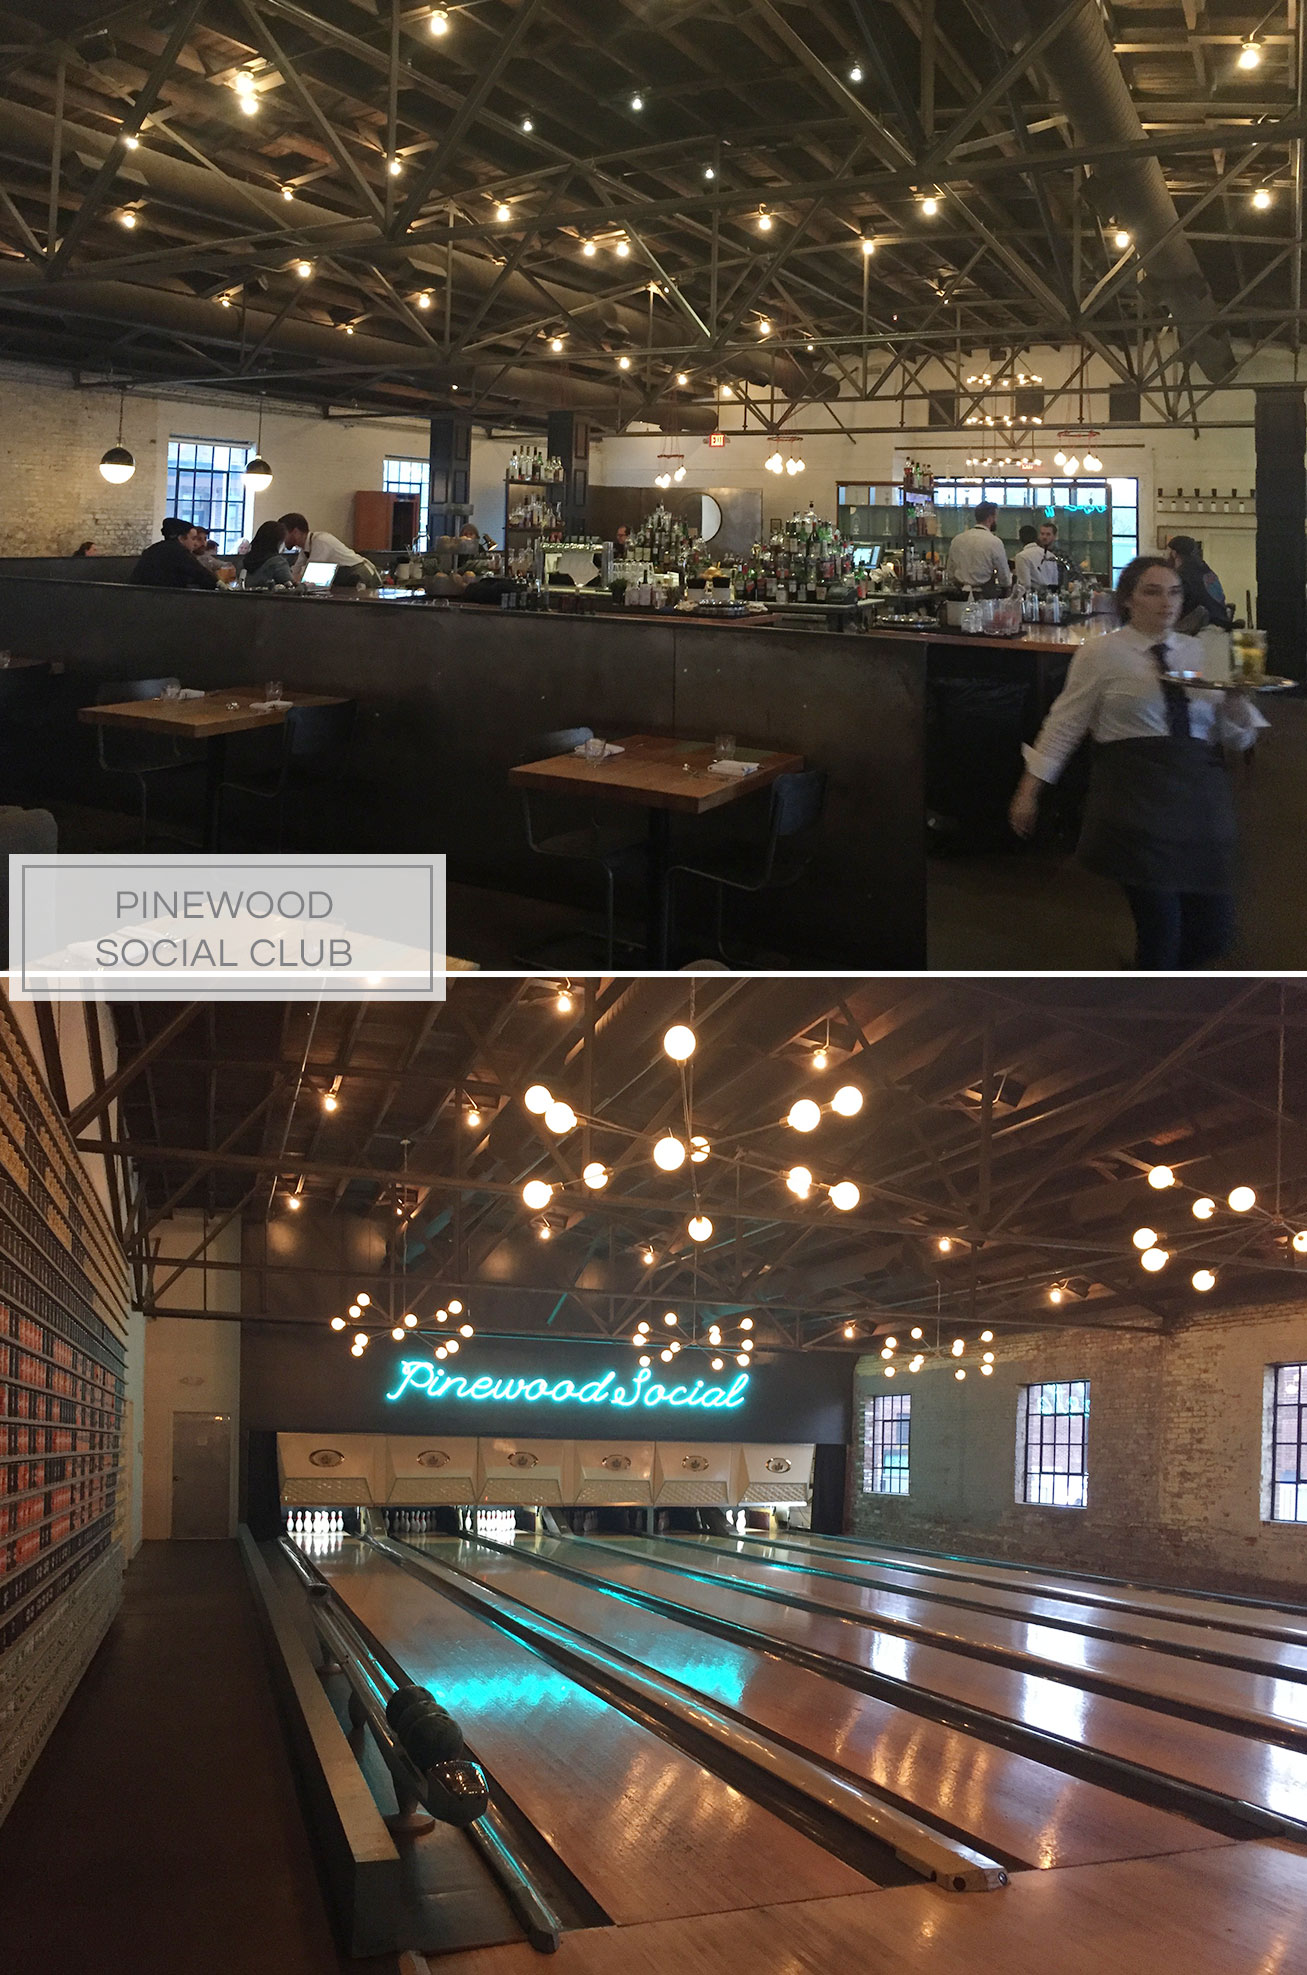 Pinewood Social Club - Nashville City Guide